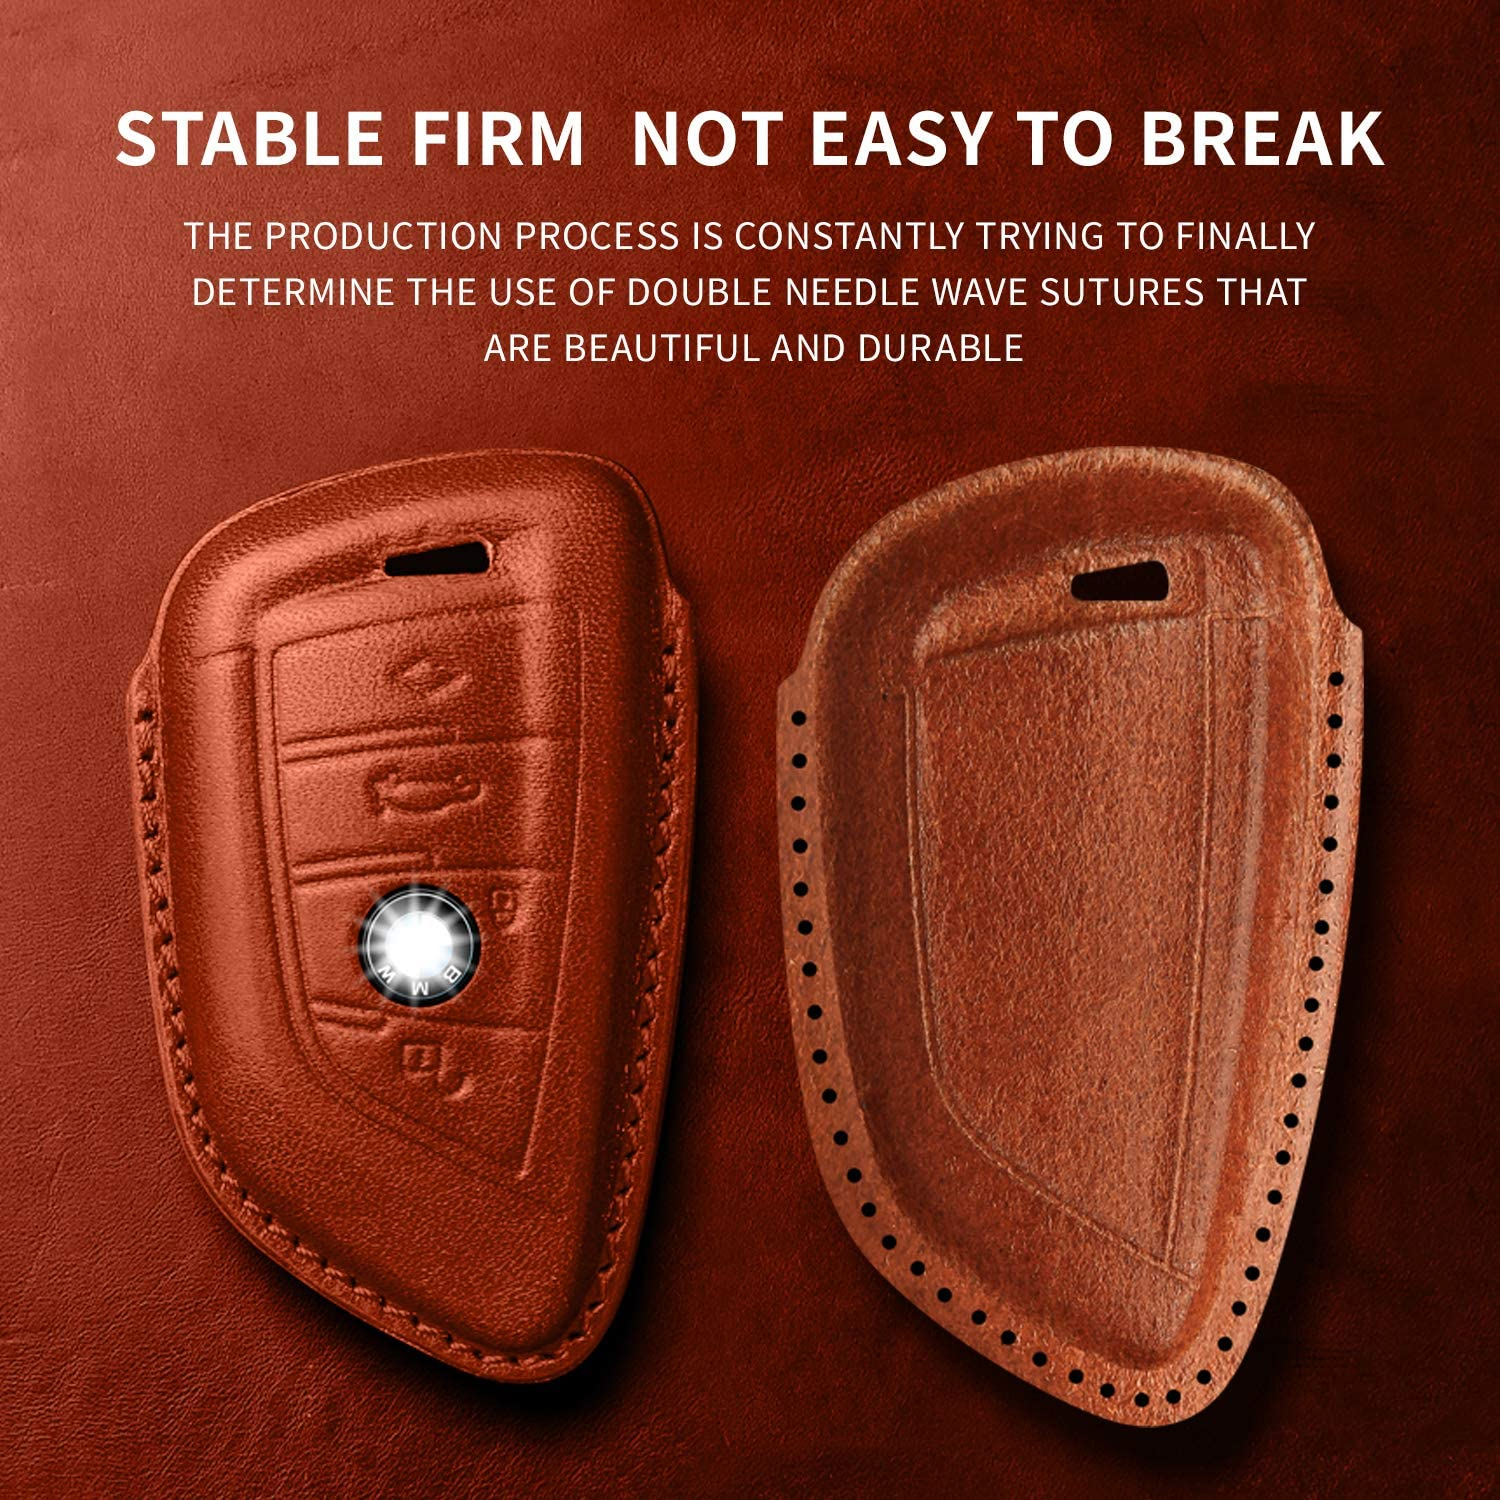 Brown Keyless Entry Genuine Leather key case for BMW 2 5 6 7 Series X1 X2 X3 X5 X6 X7 Series GT Autophone For BMW key fob cover,Premium Fashion Appearance With metal hook